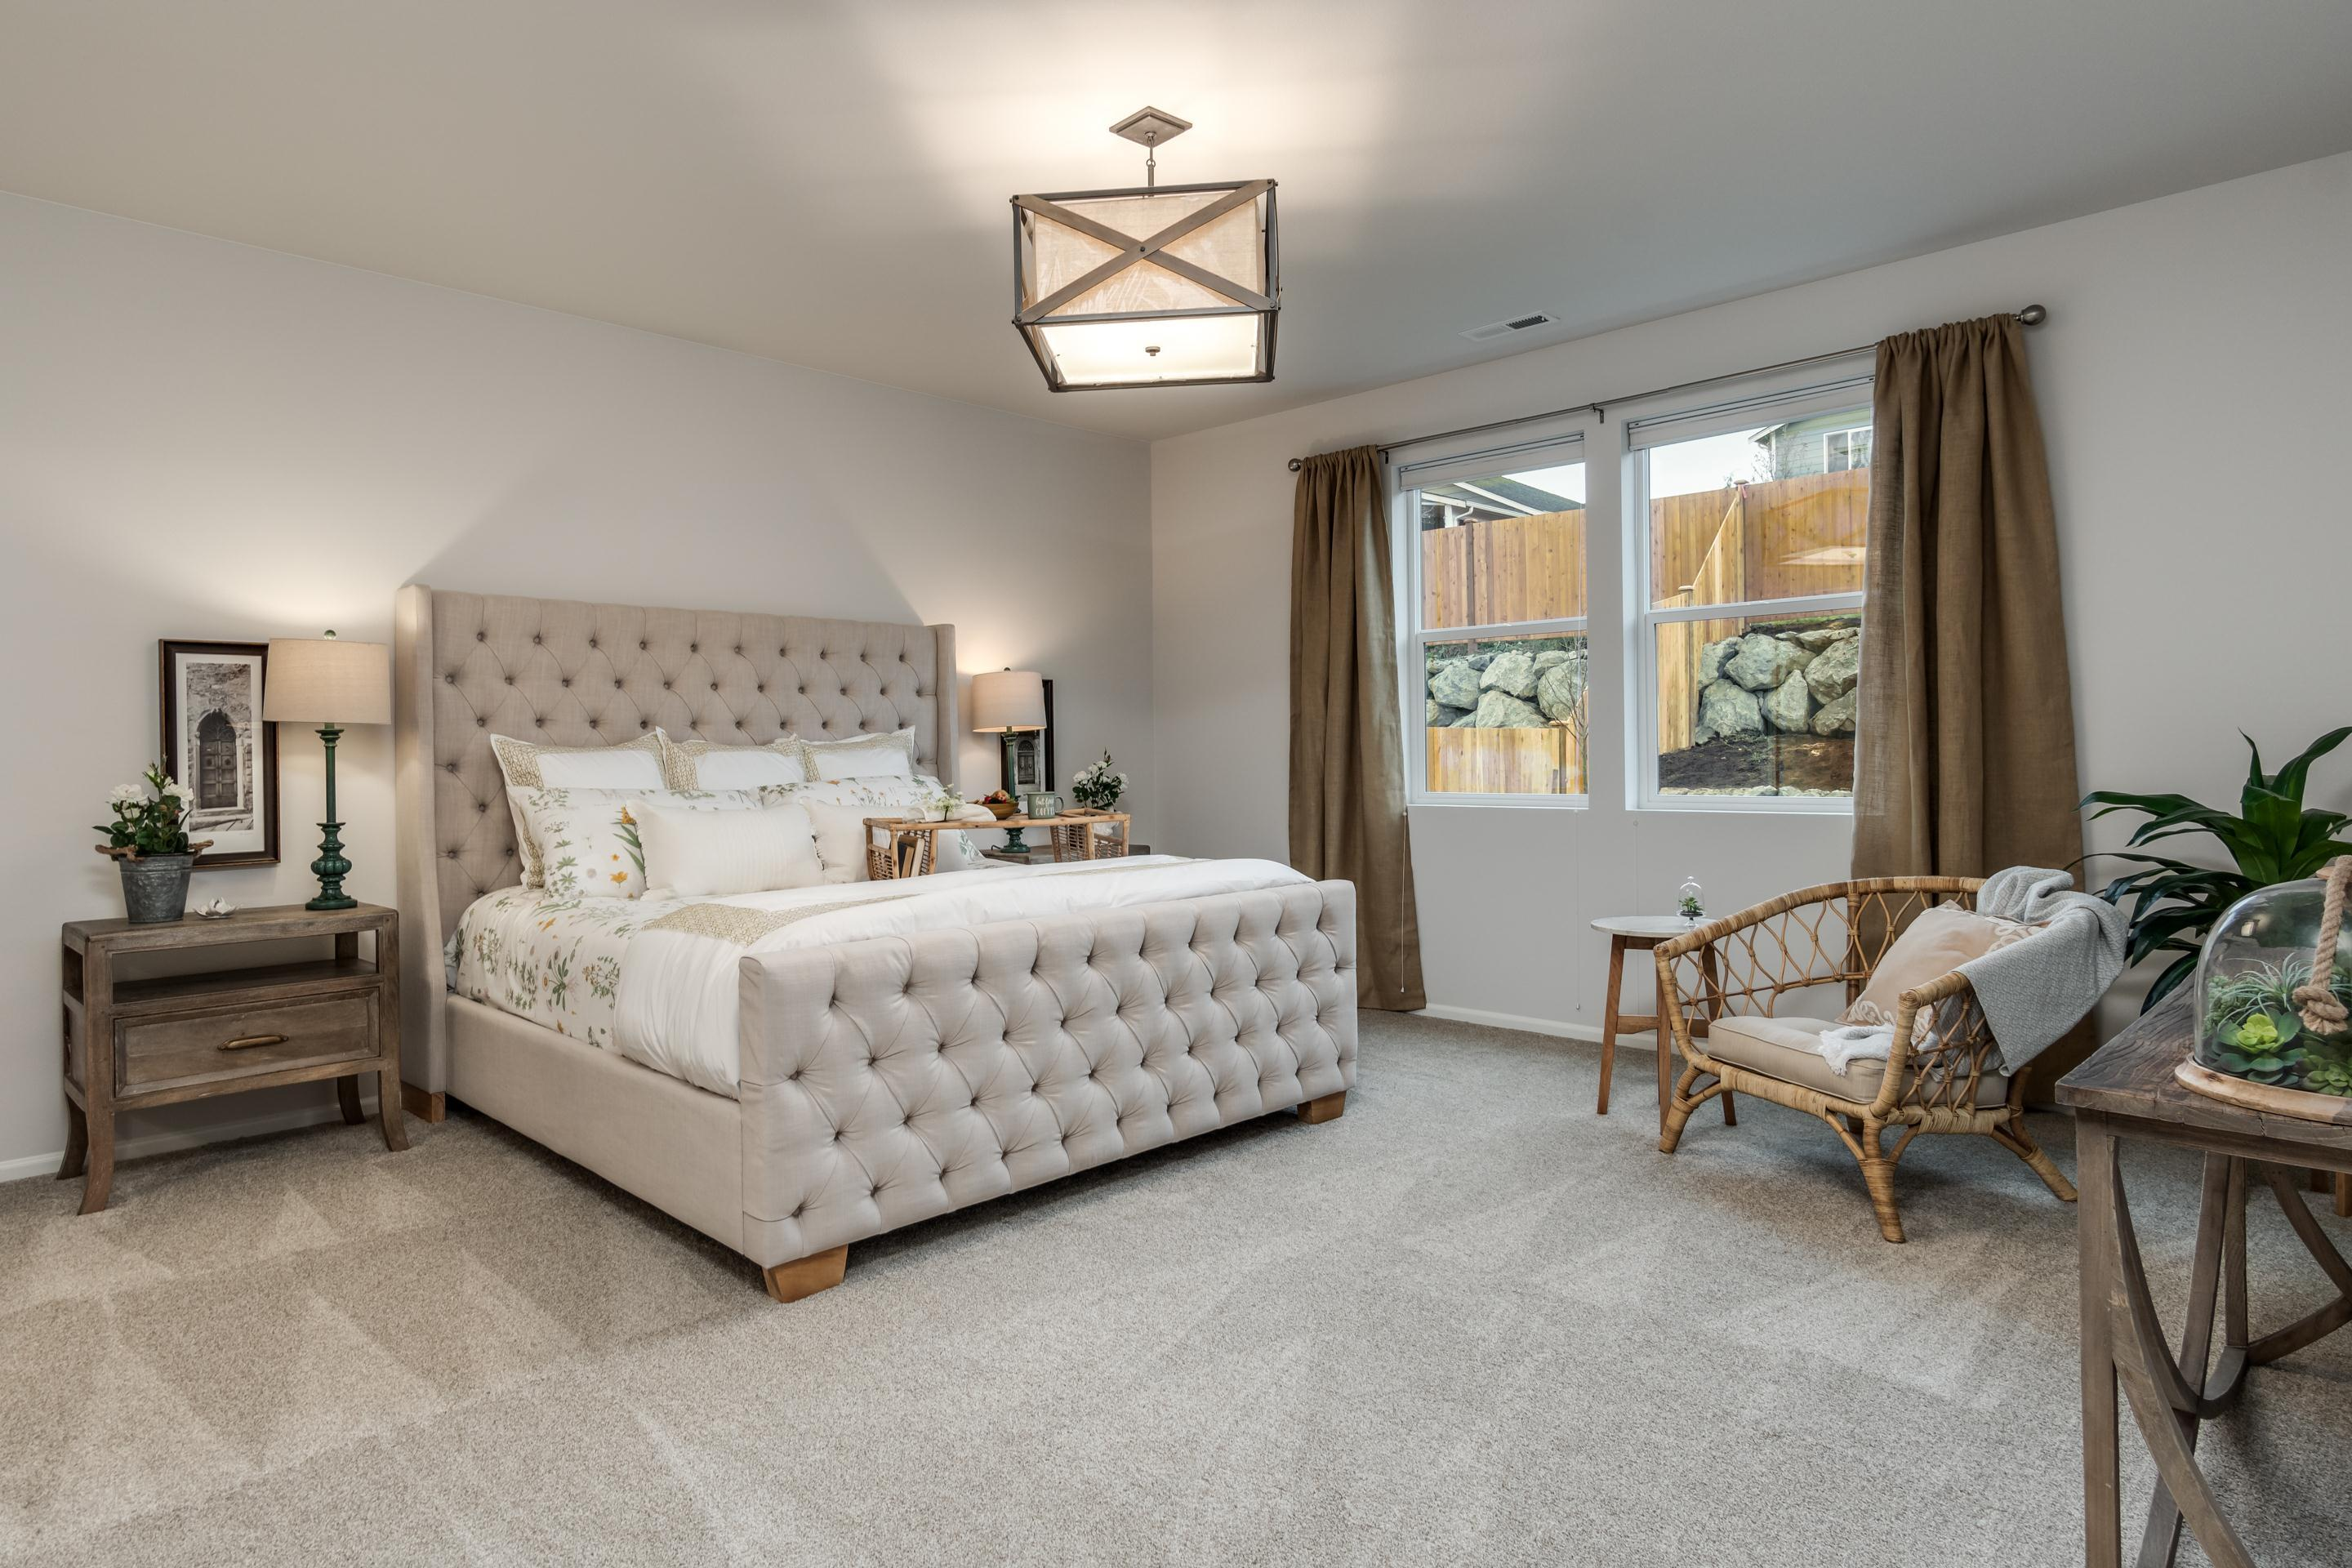 Bedroom featured in the CC Sinclair By Landed Gentry Homes in Bellingham, WA